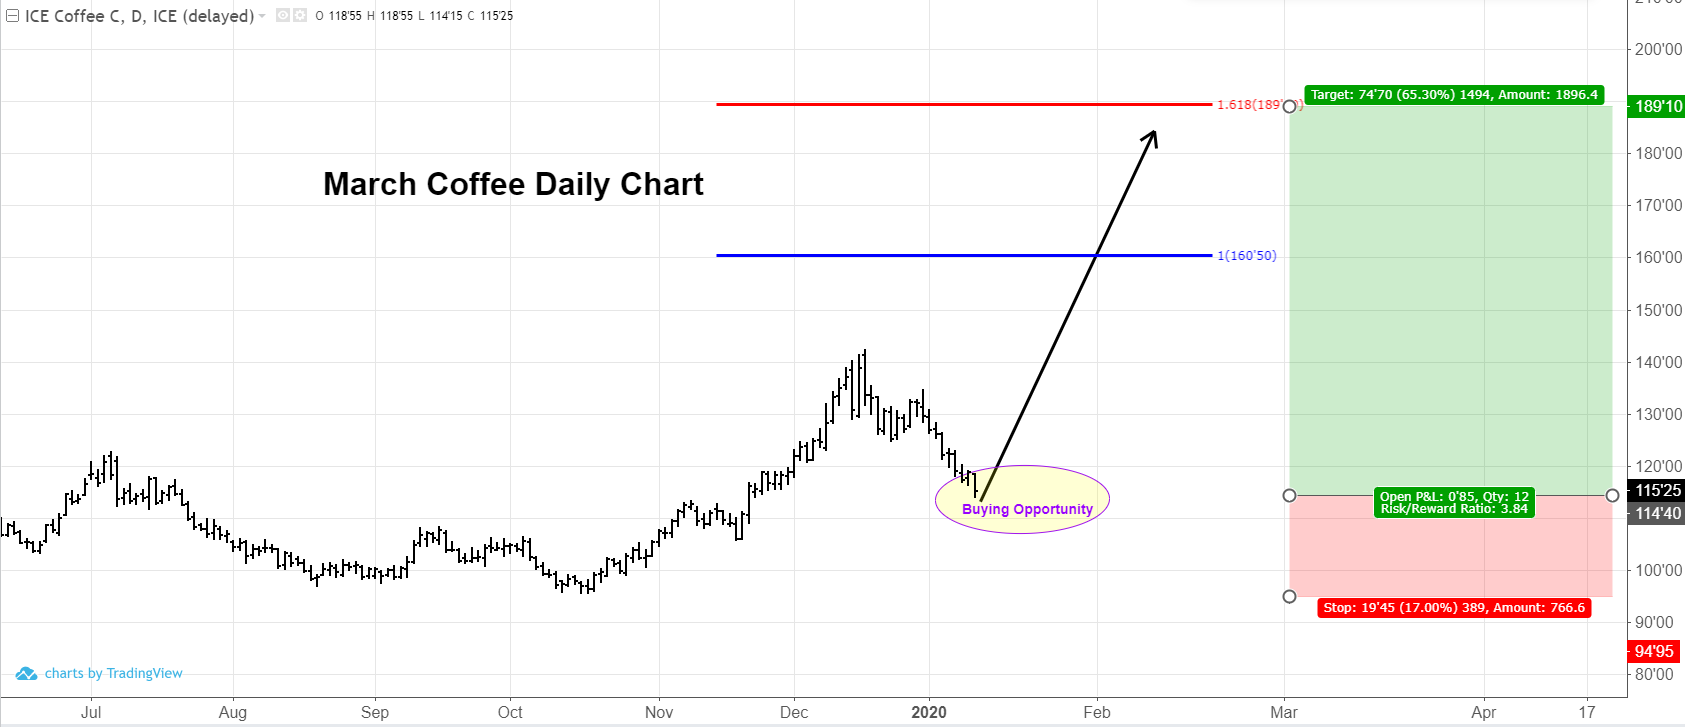 March Coffee Futures Daily Chart